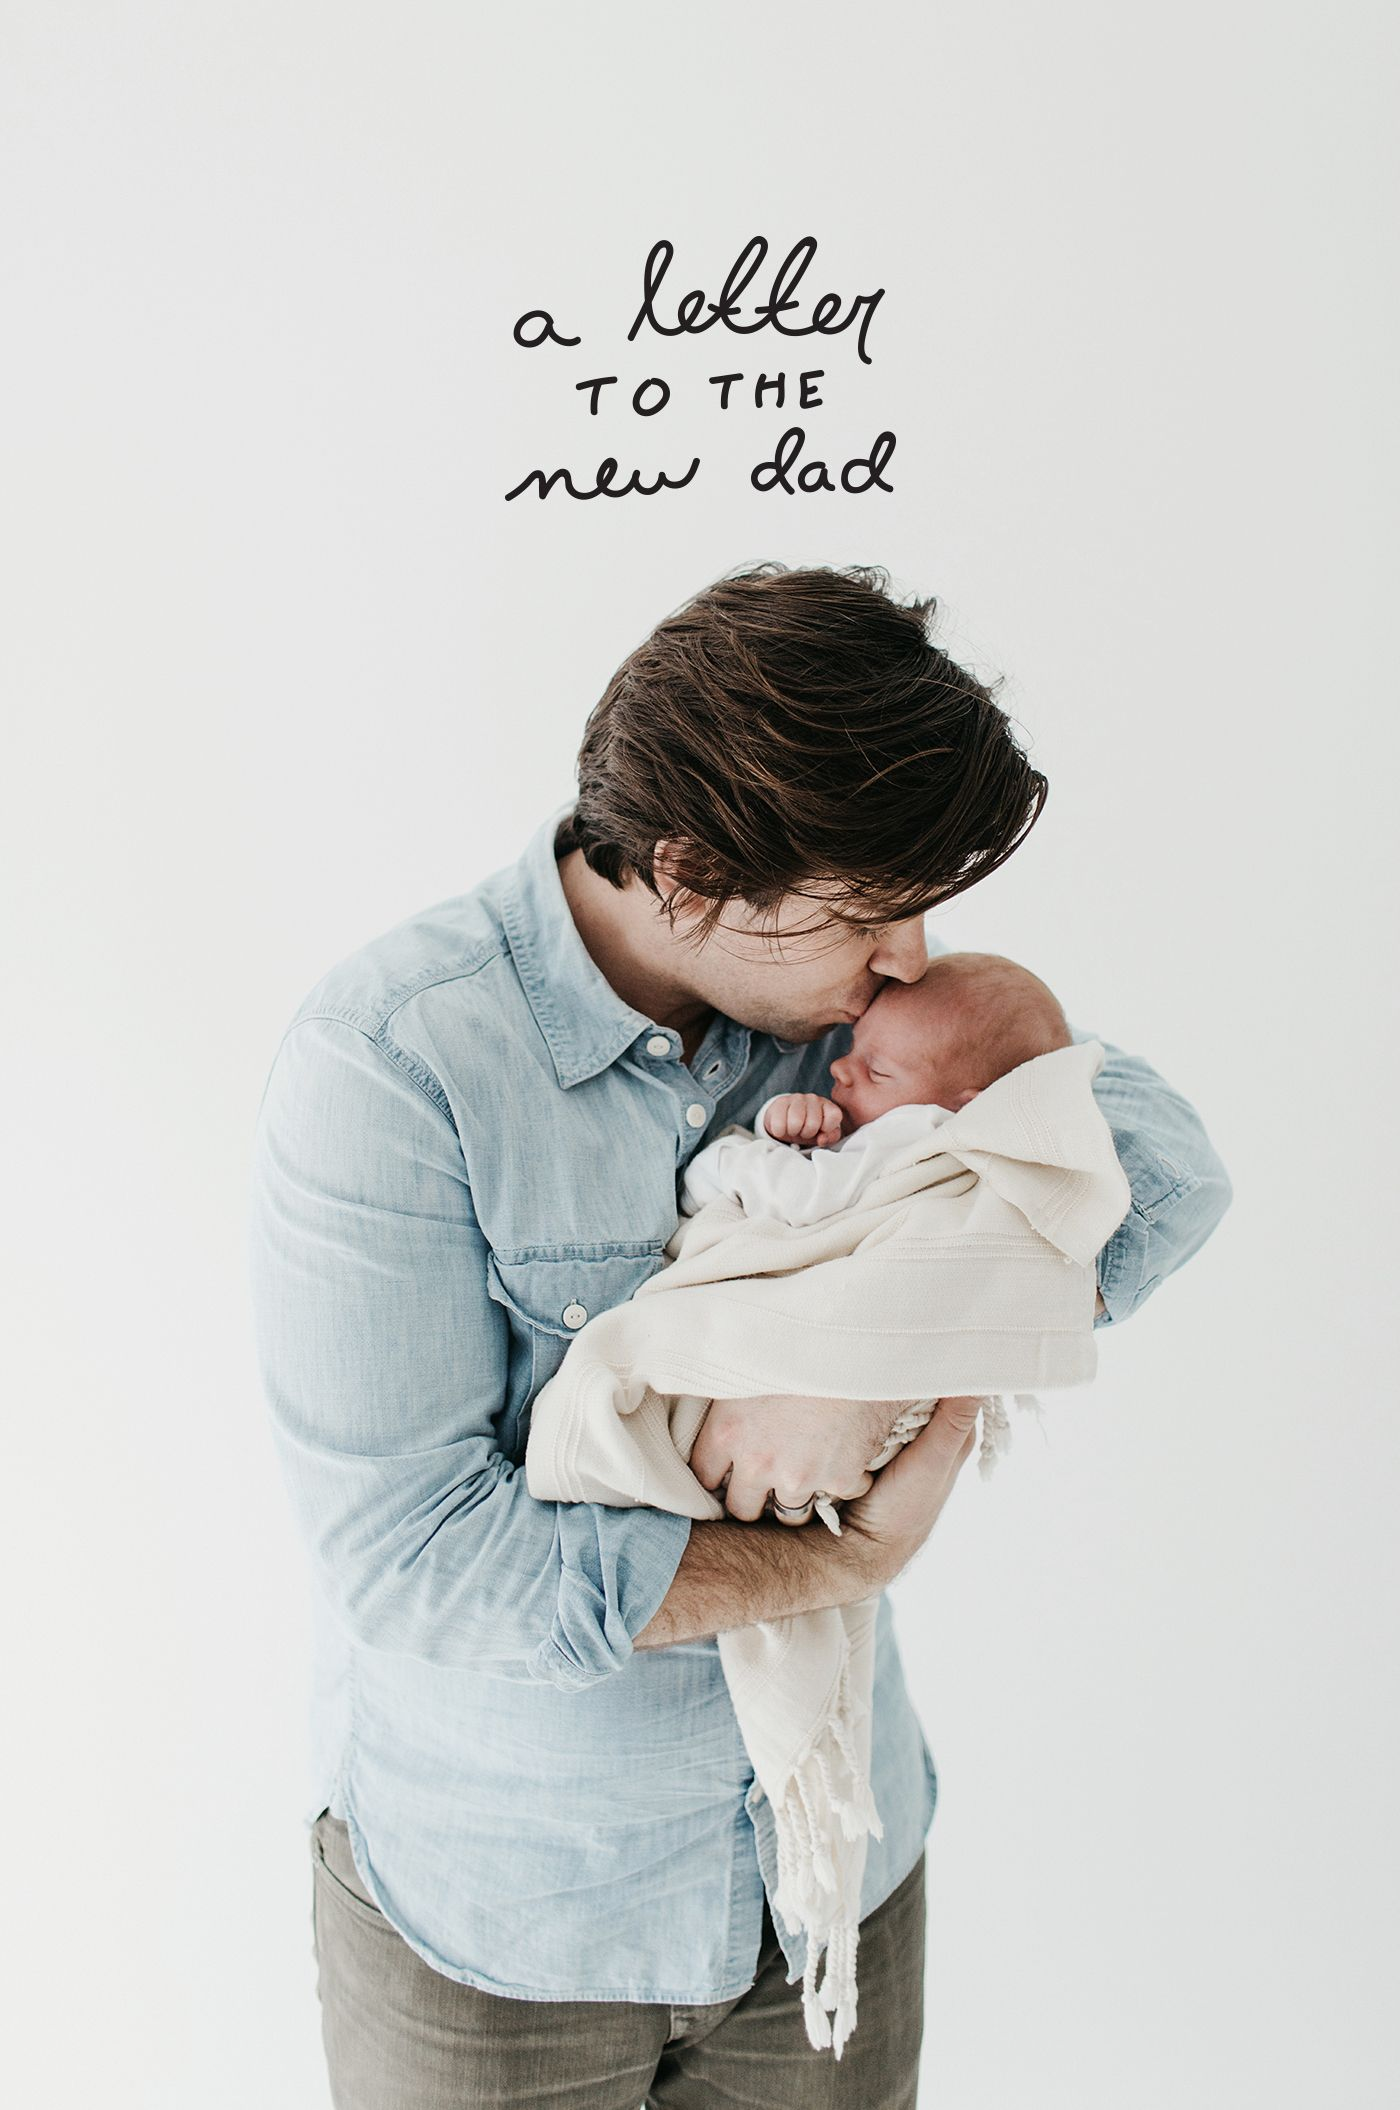 For Father S Day A Letter To The New Dad New Dad Quotes First Time Quotes New Dads